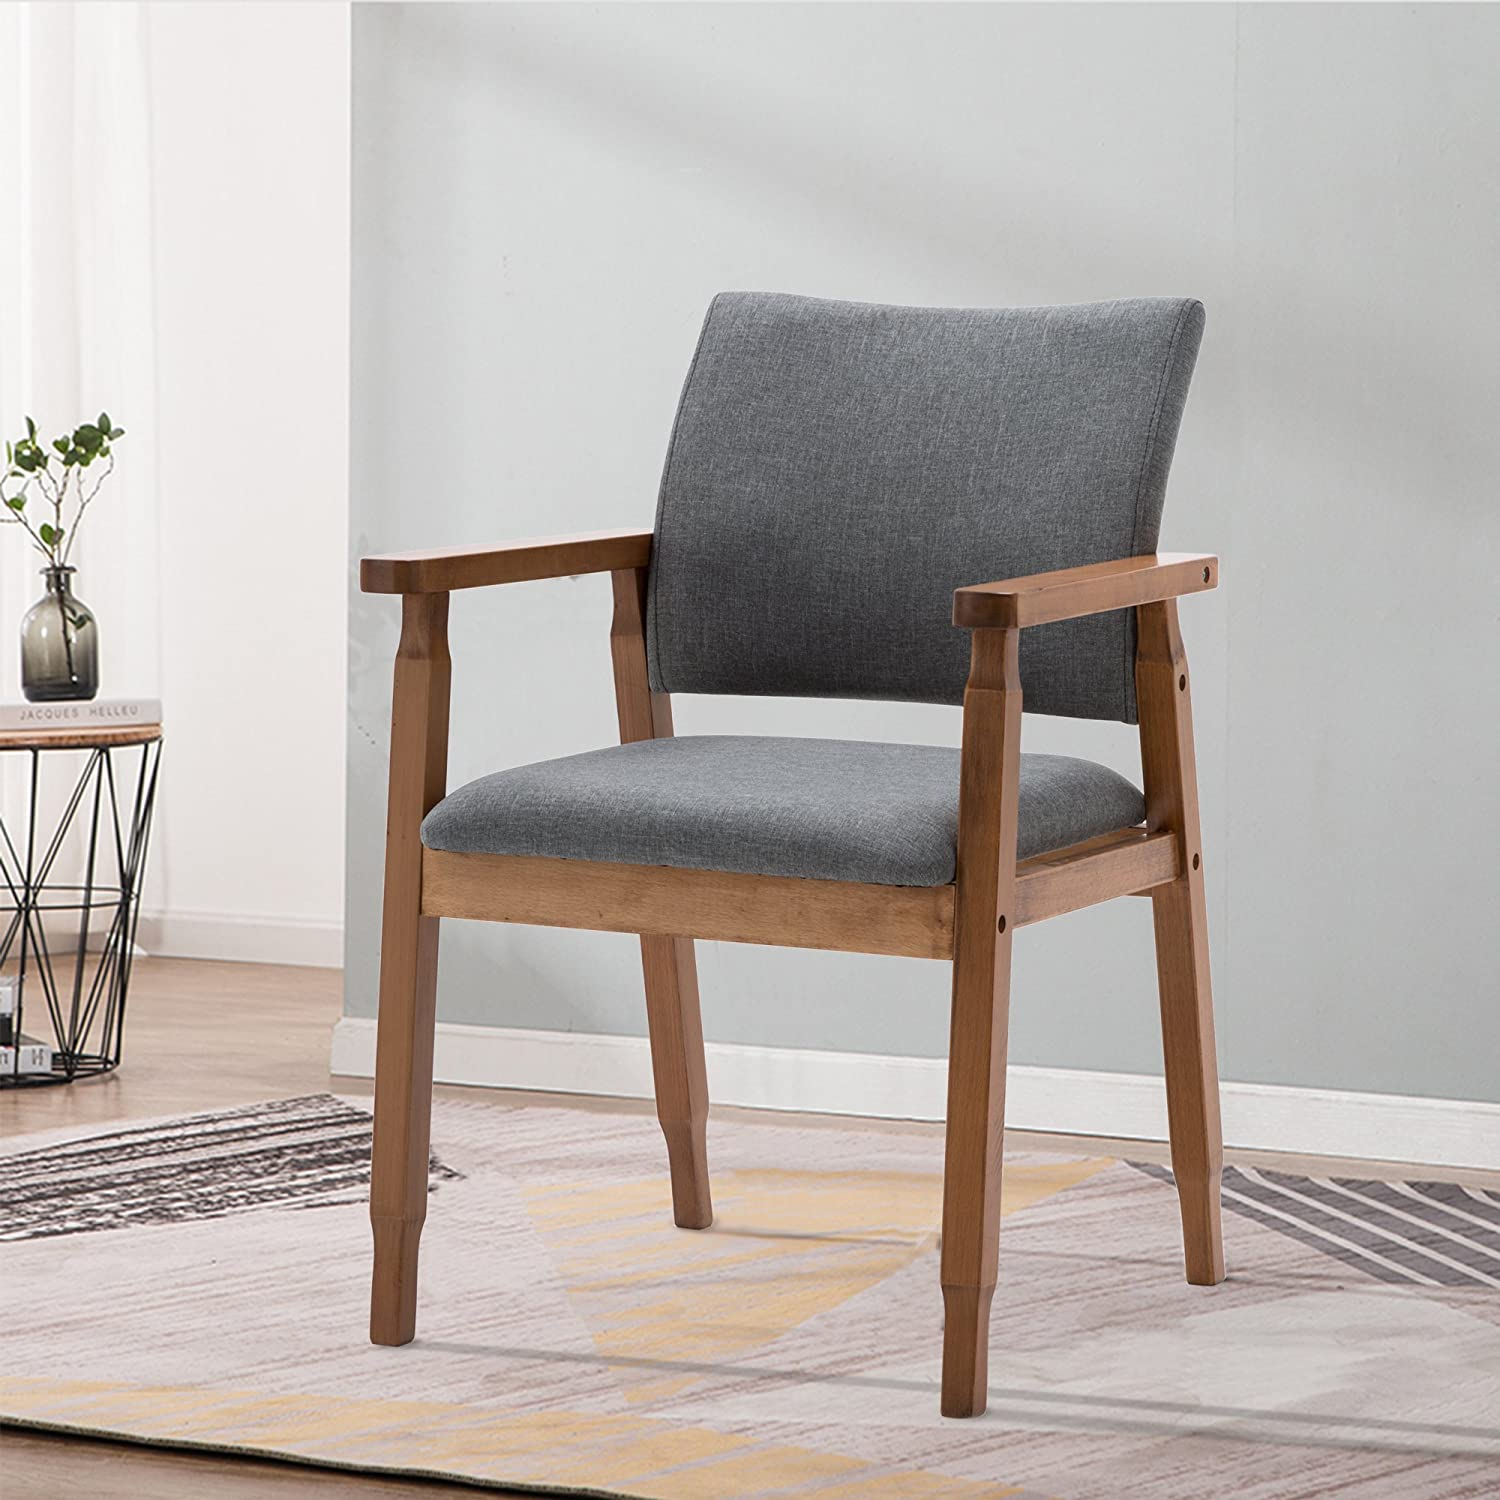 Amazon com mid century modern dining chairs wood arm gray fabric kitchen cafe living room decor furniture chairs